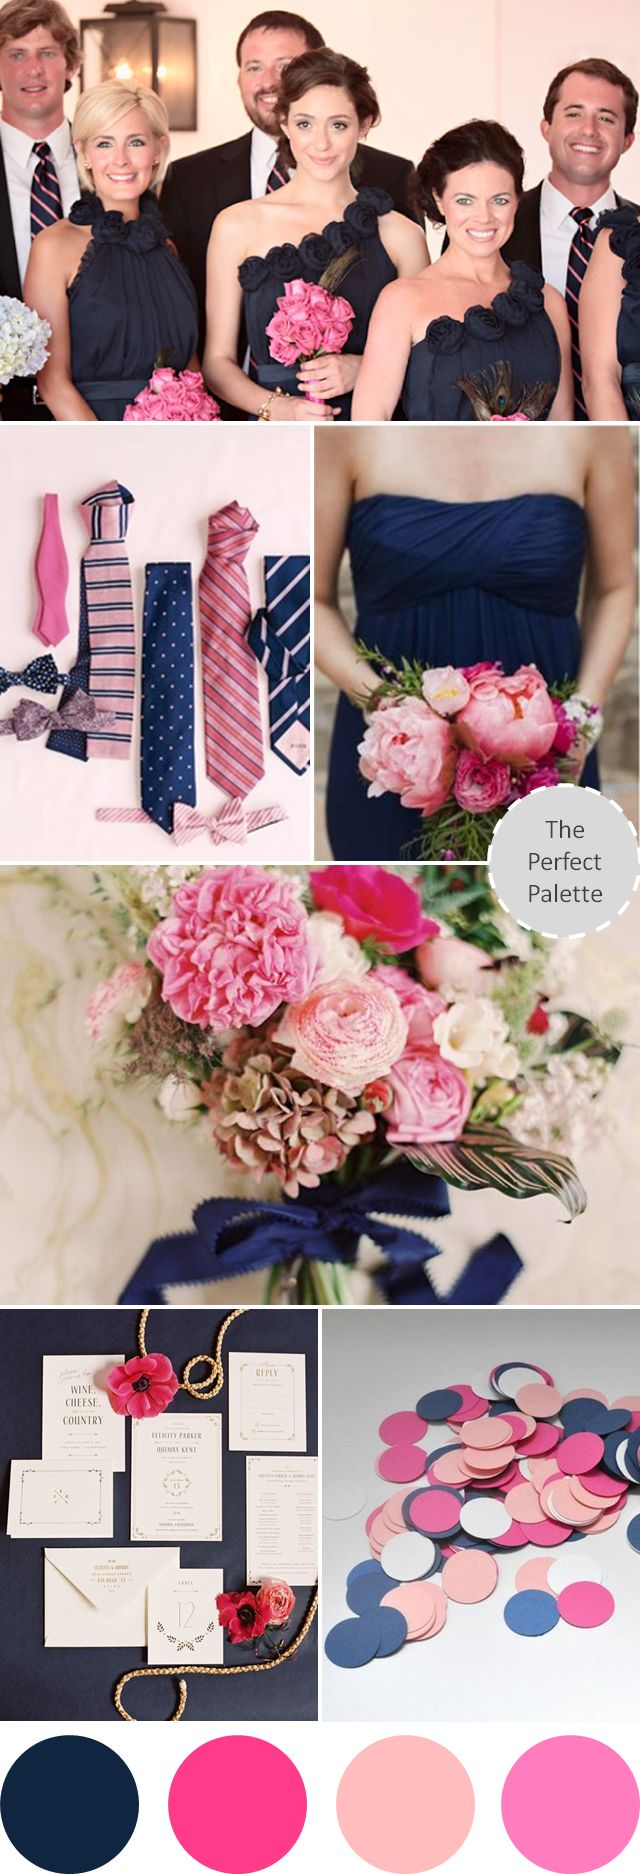 Wedding Colors I Love   Navy Blue + Shades of Pink! http://www.theperfectpalette.com/2013/08/wedding-colors-i-love-navy-blue-shades.html